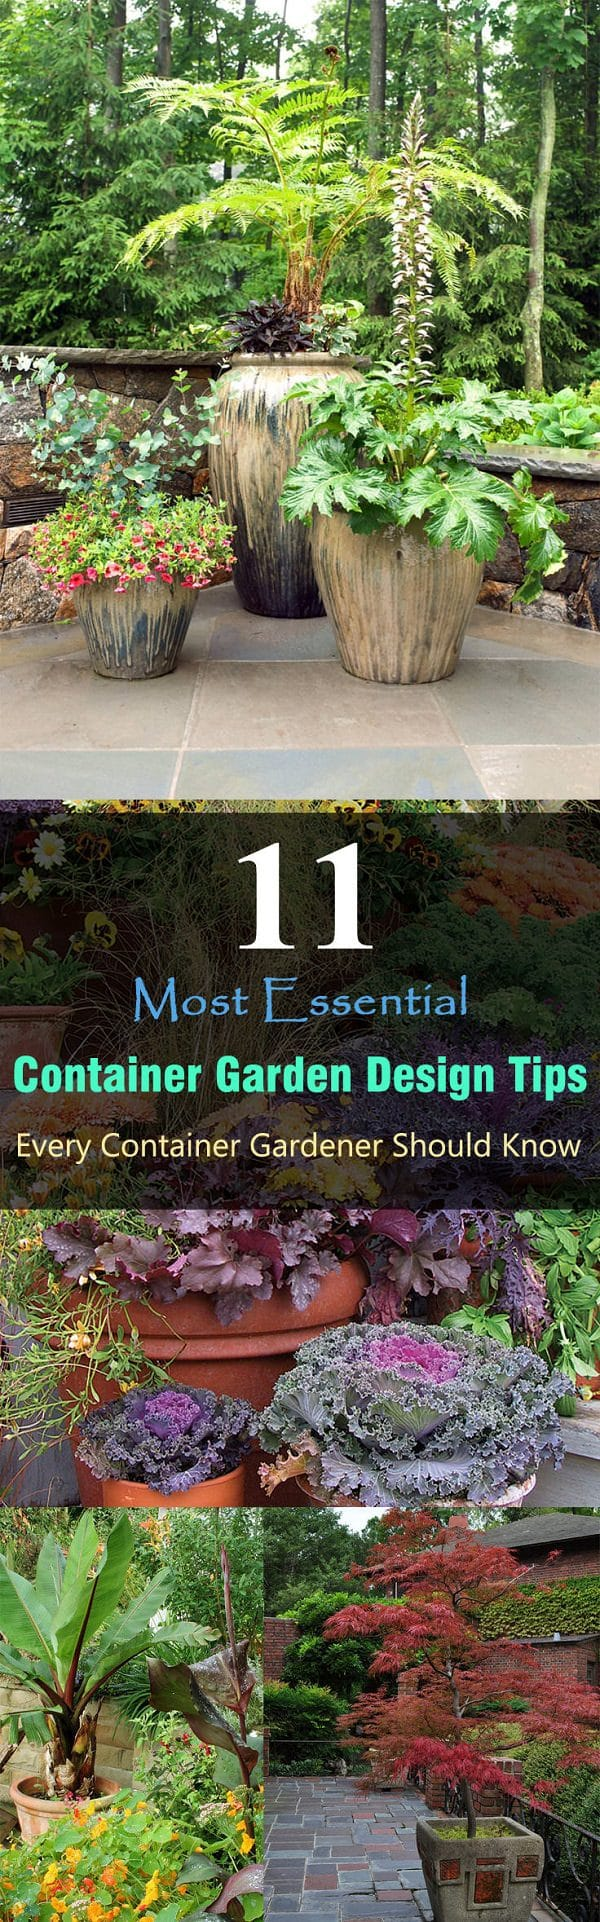 With These 11 Important Container Garden Design Tips, You Can Create A  Beautiful Container Garden